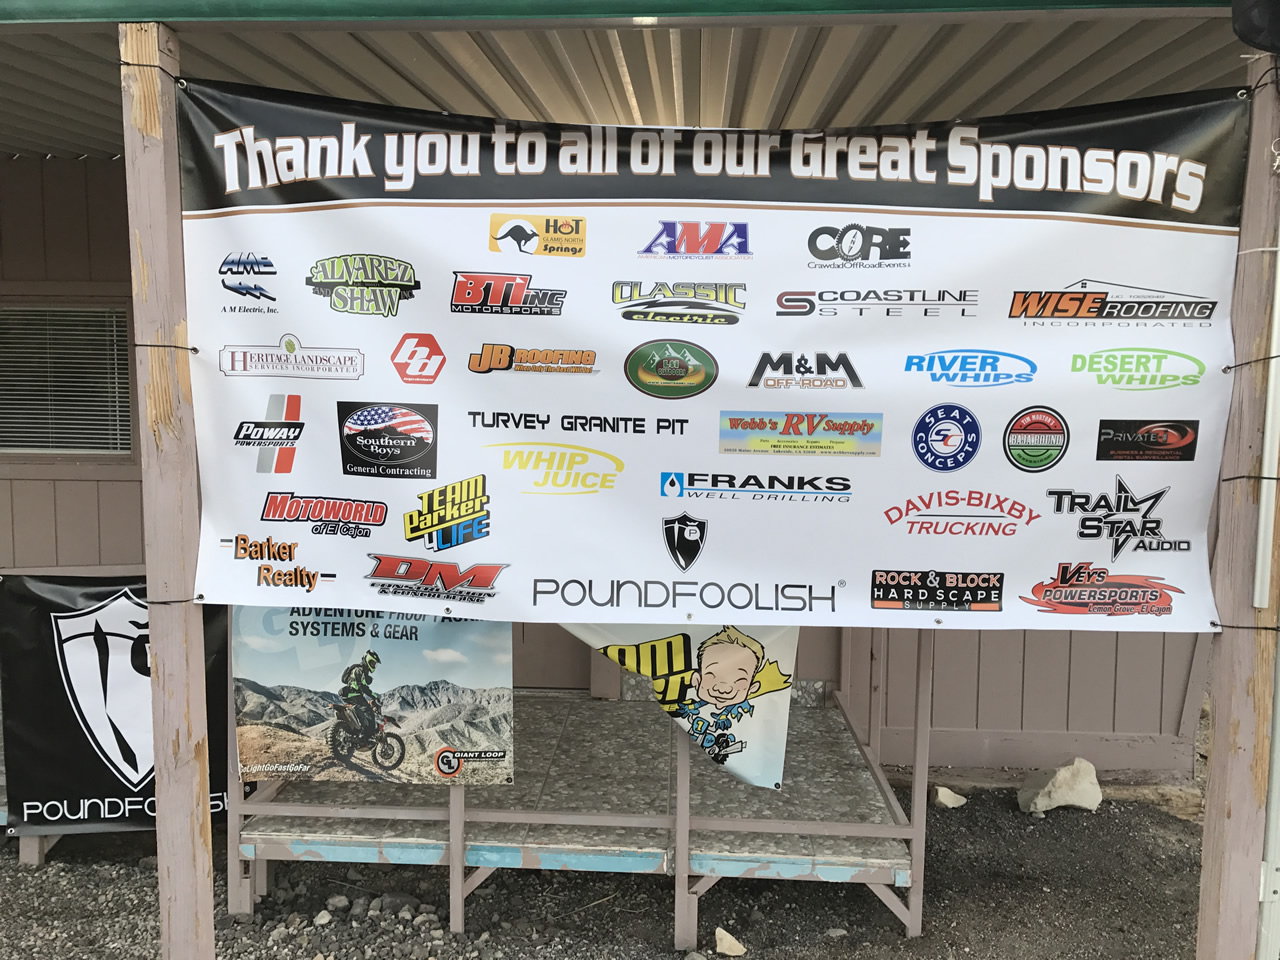 Crawdad Off Road Events sponsorship thank you banner